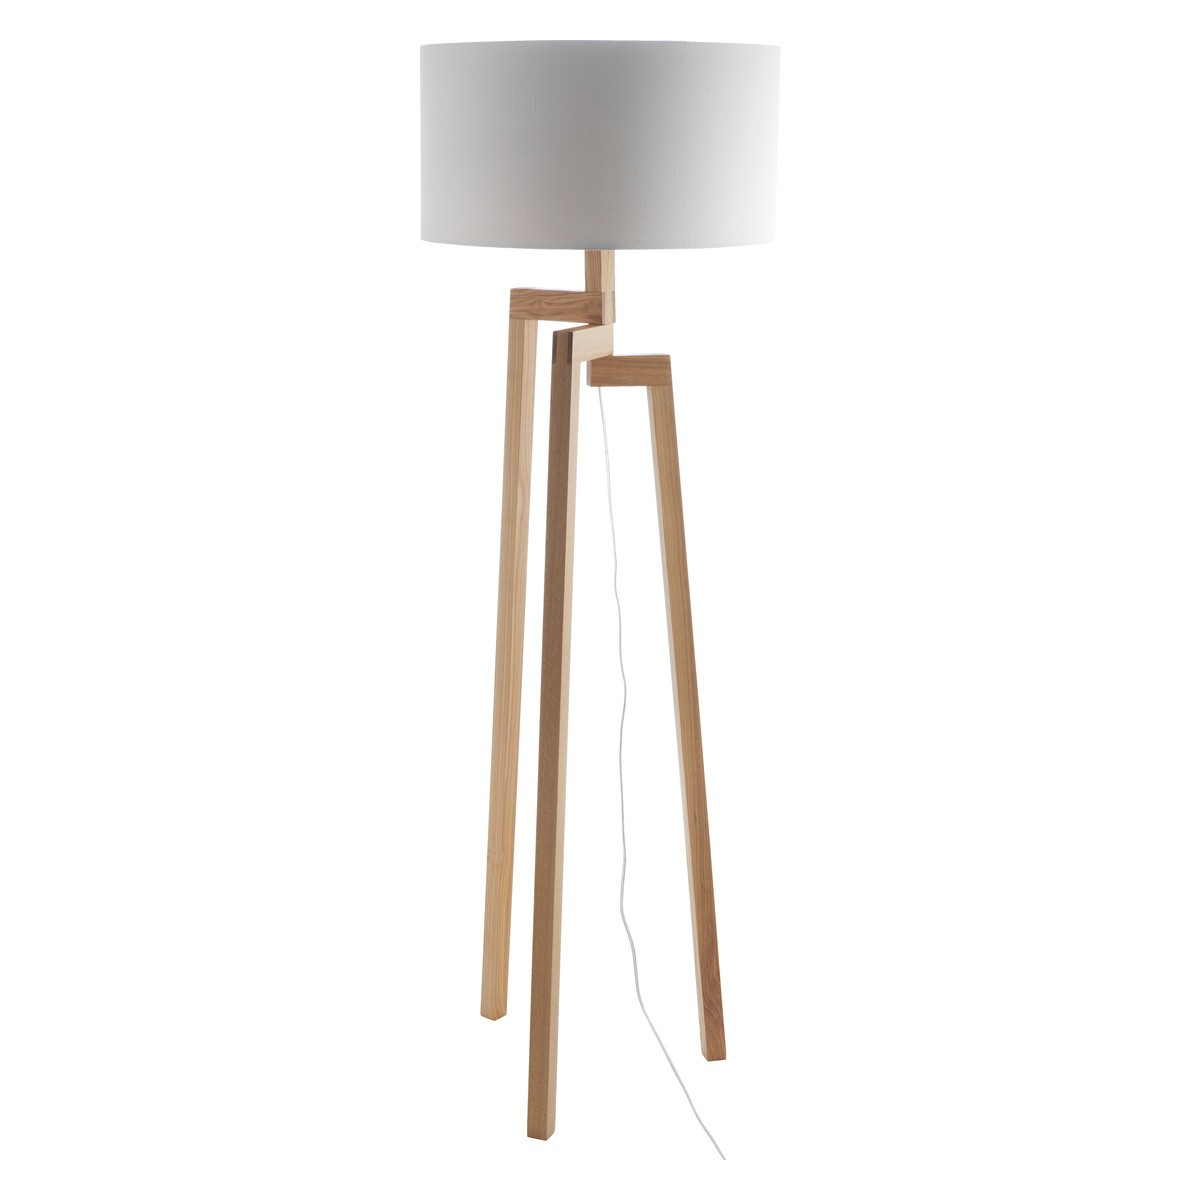 Top 10 floor lamps wood 2018 warisan lighting introduction all cutting edge floor lamp wood geotapseo Image collections